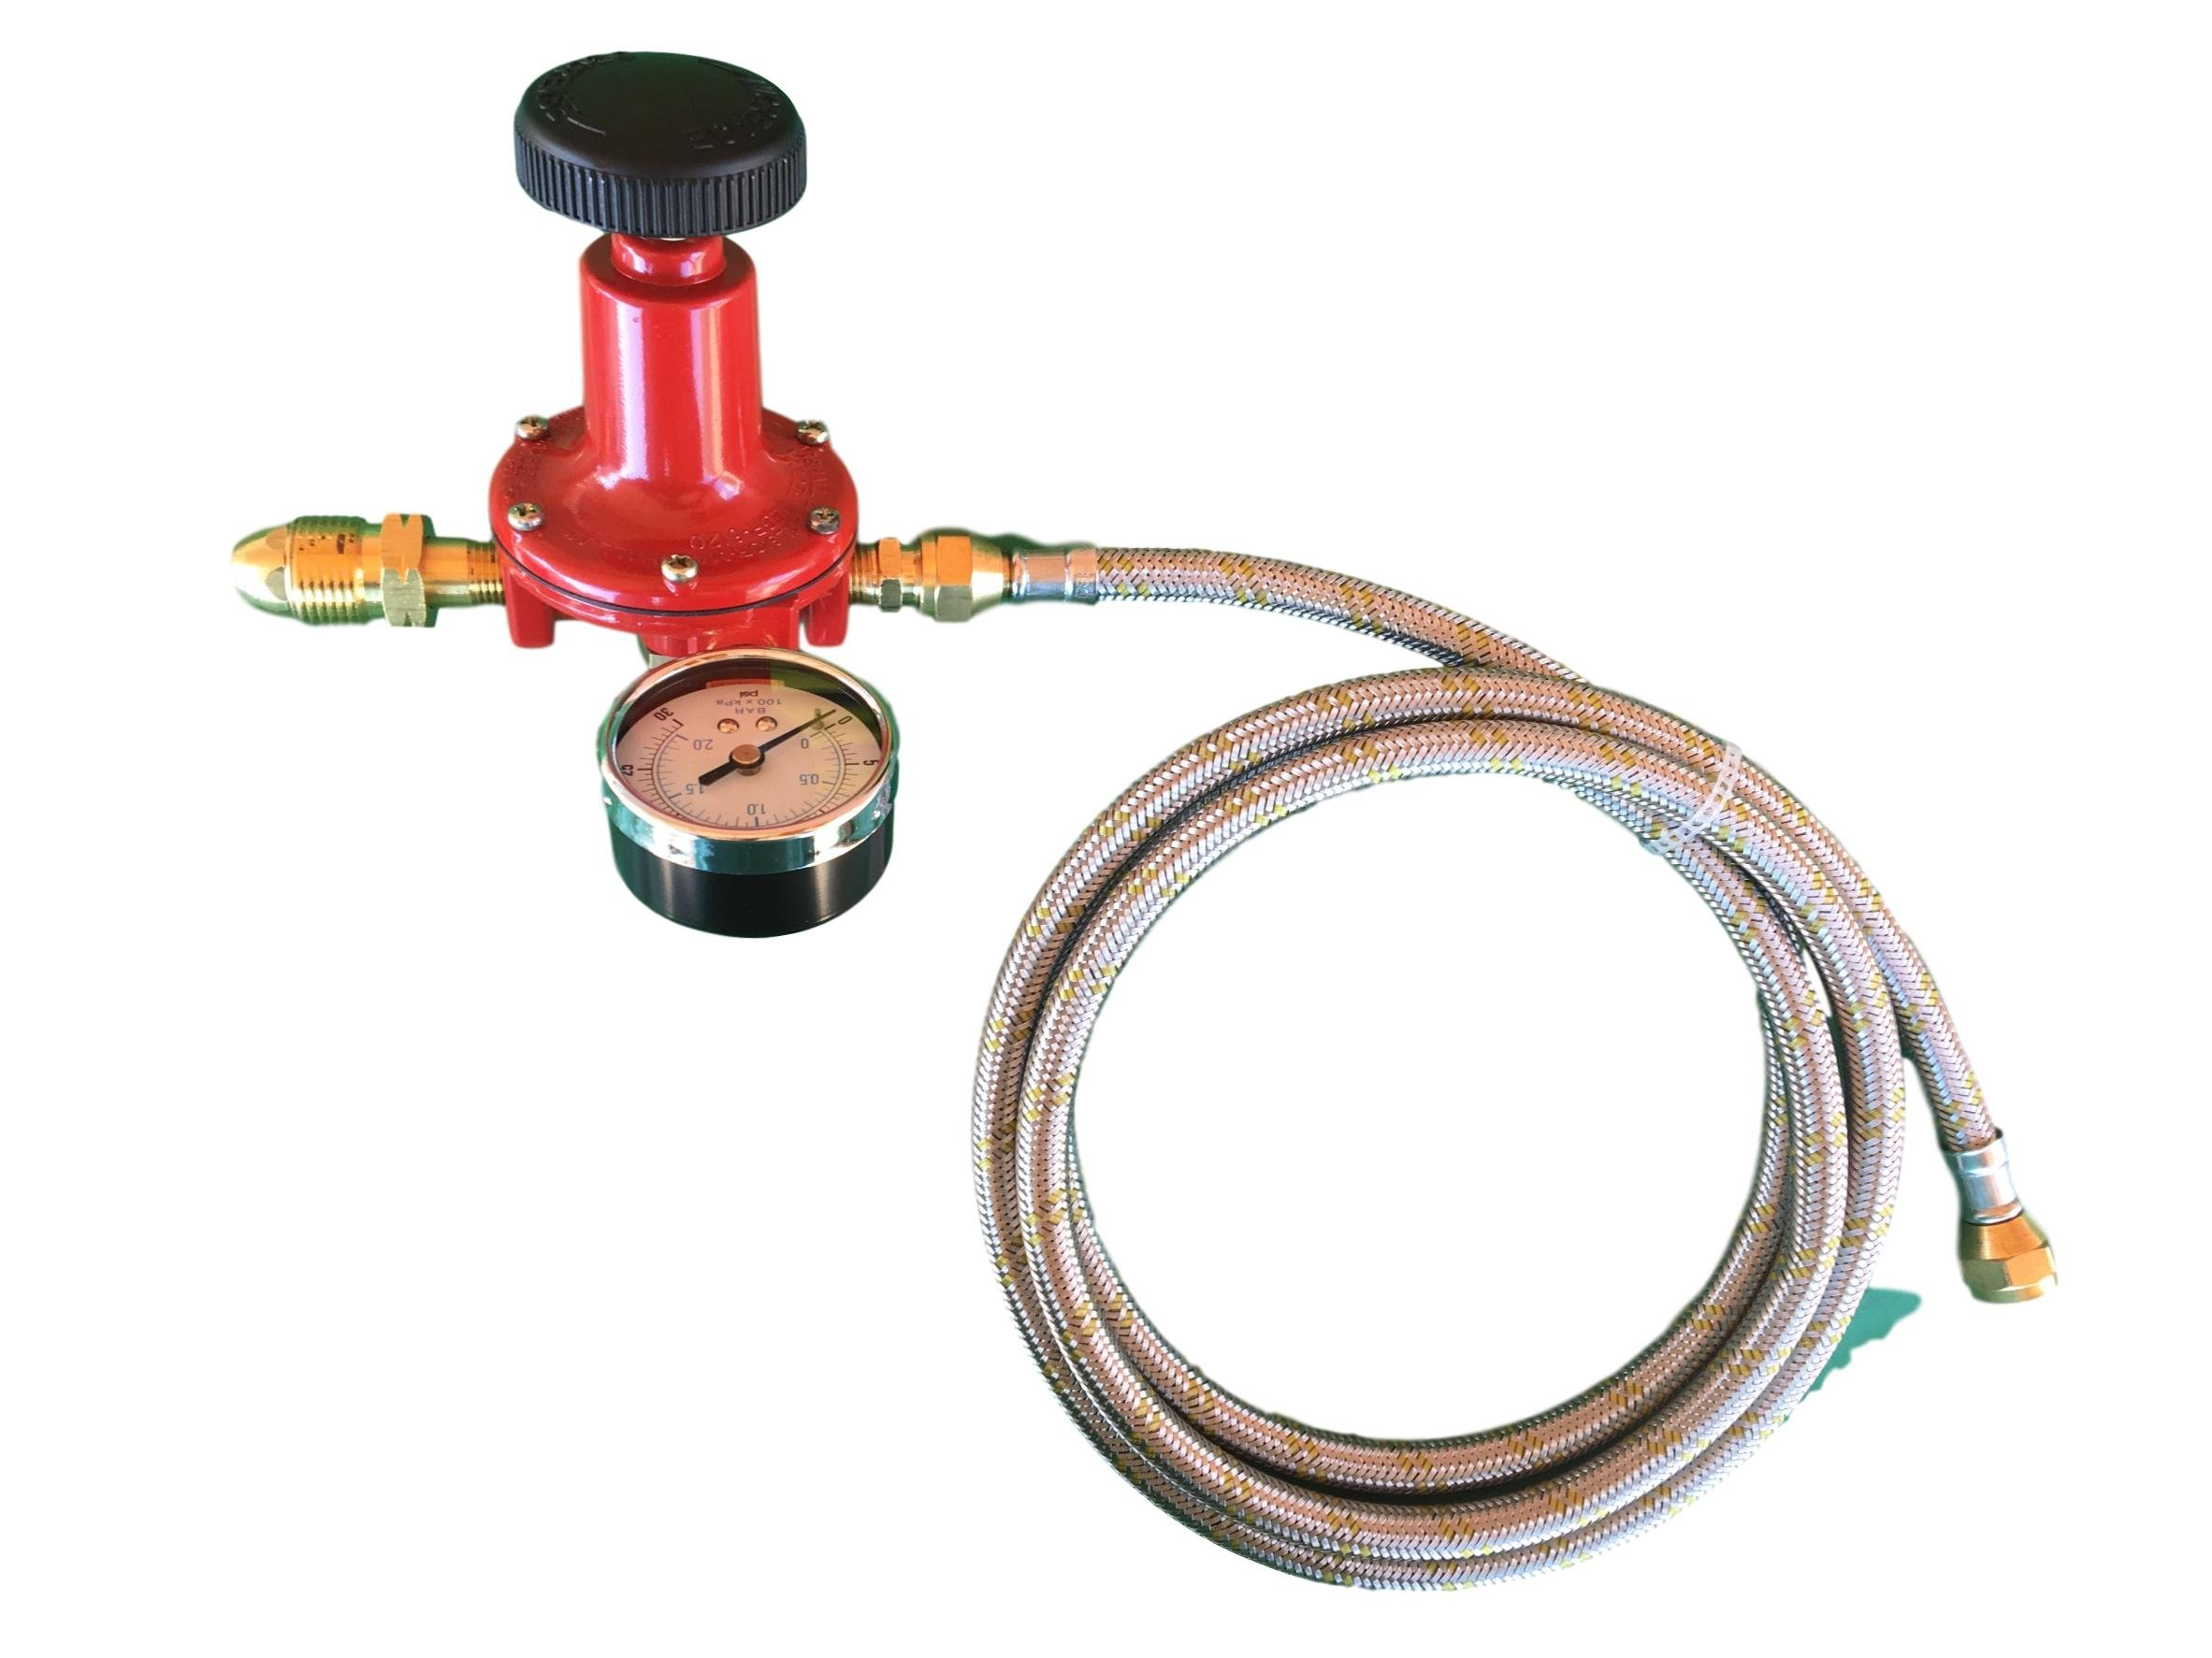 Propane LP Gas Adjustable 0-30psi High Pressure Regulator POL Connector, Gauge and 12ft Stainless Steel Braided Hose